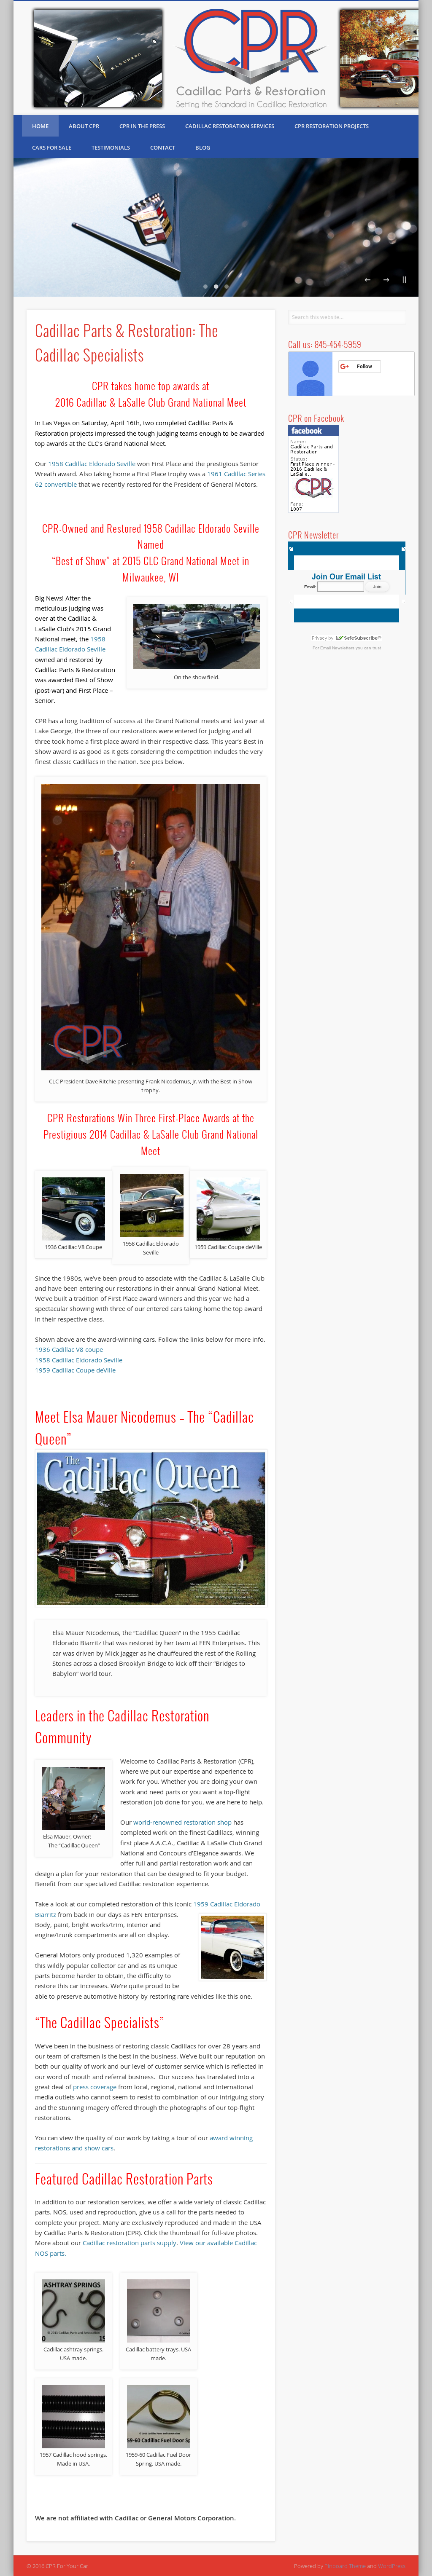 Owler Reports - Nothstar Care Point Group Blog Hard to Find Cadillac